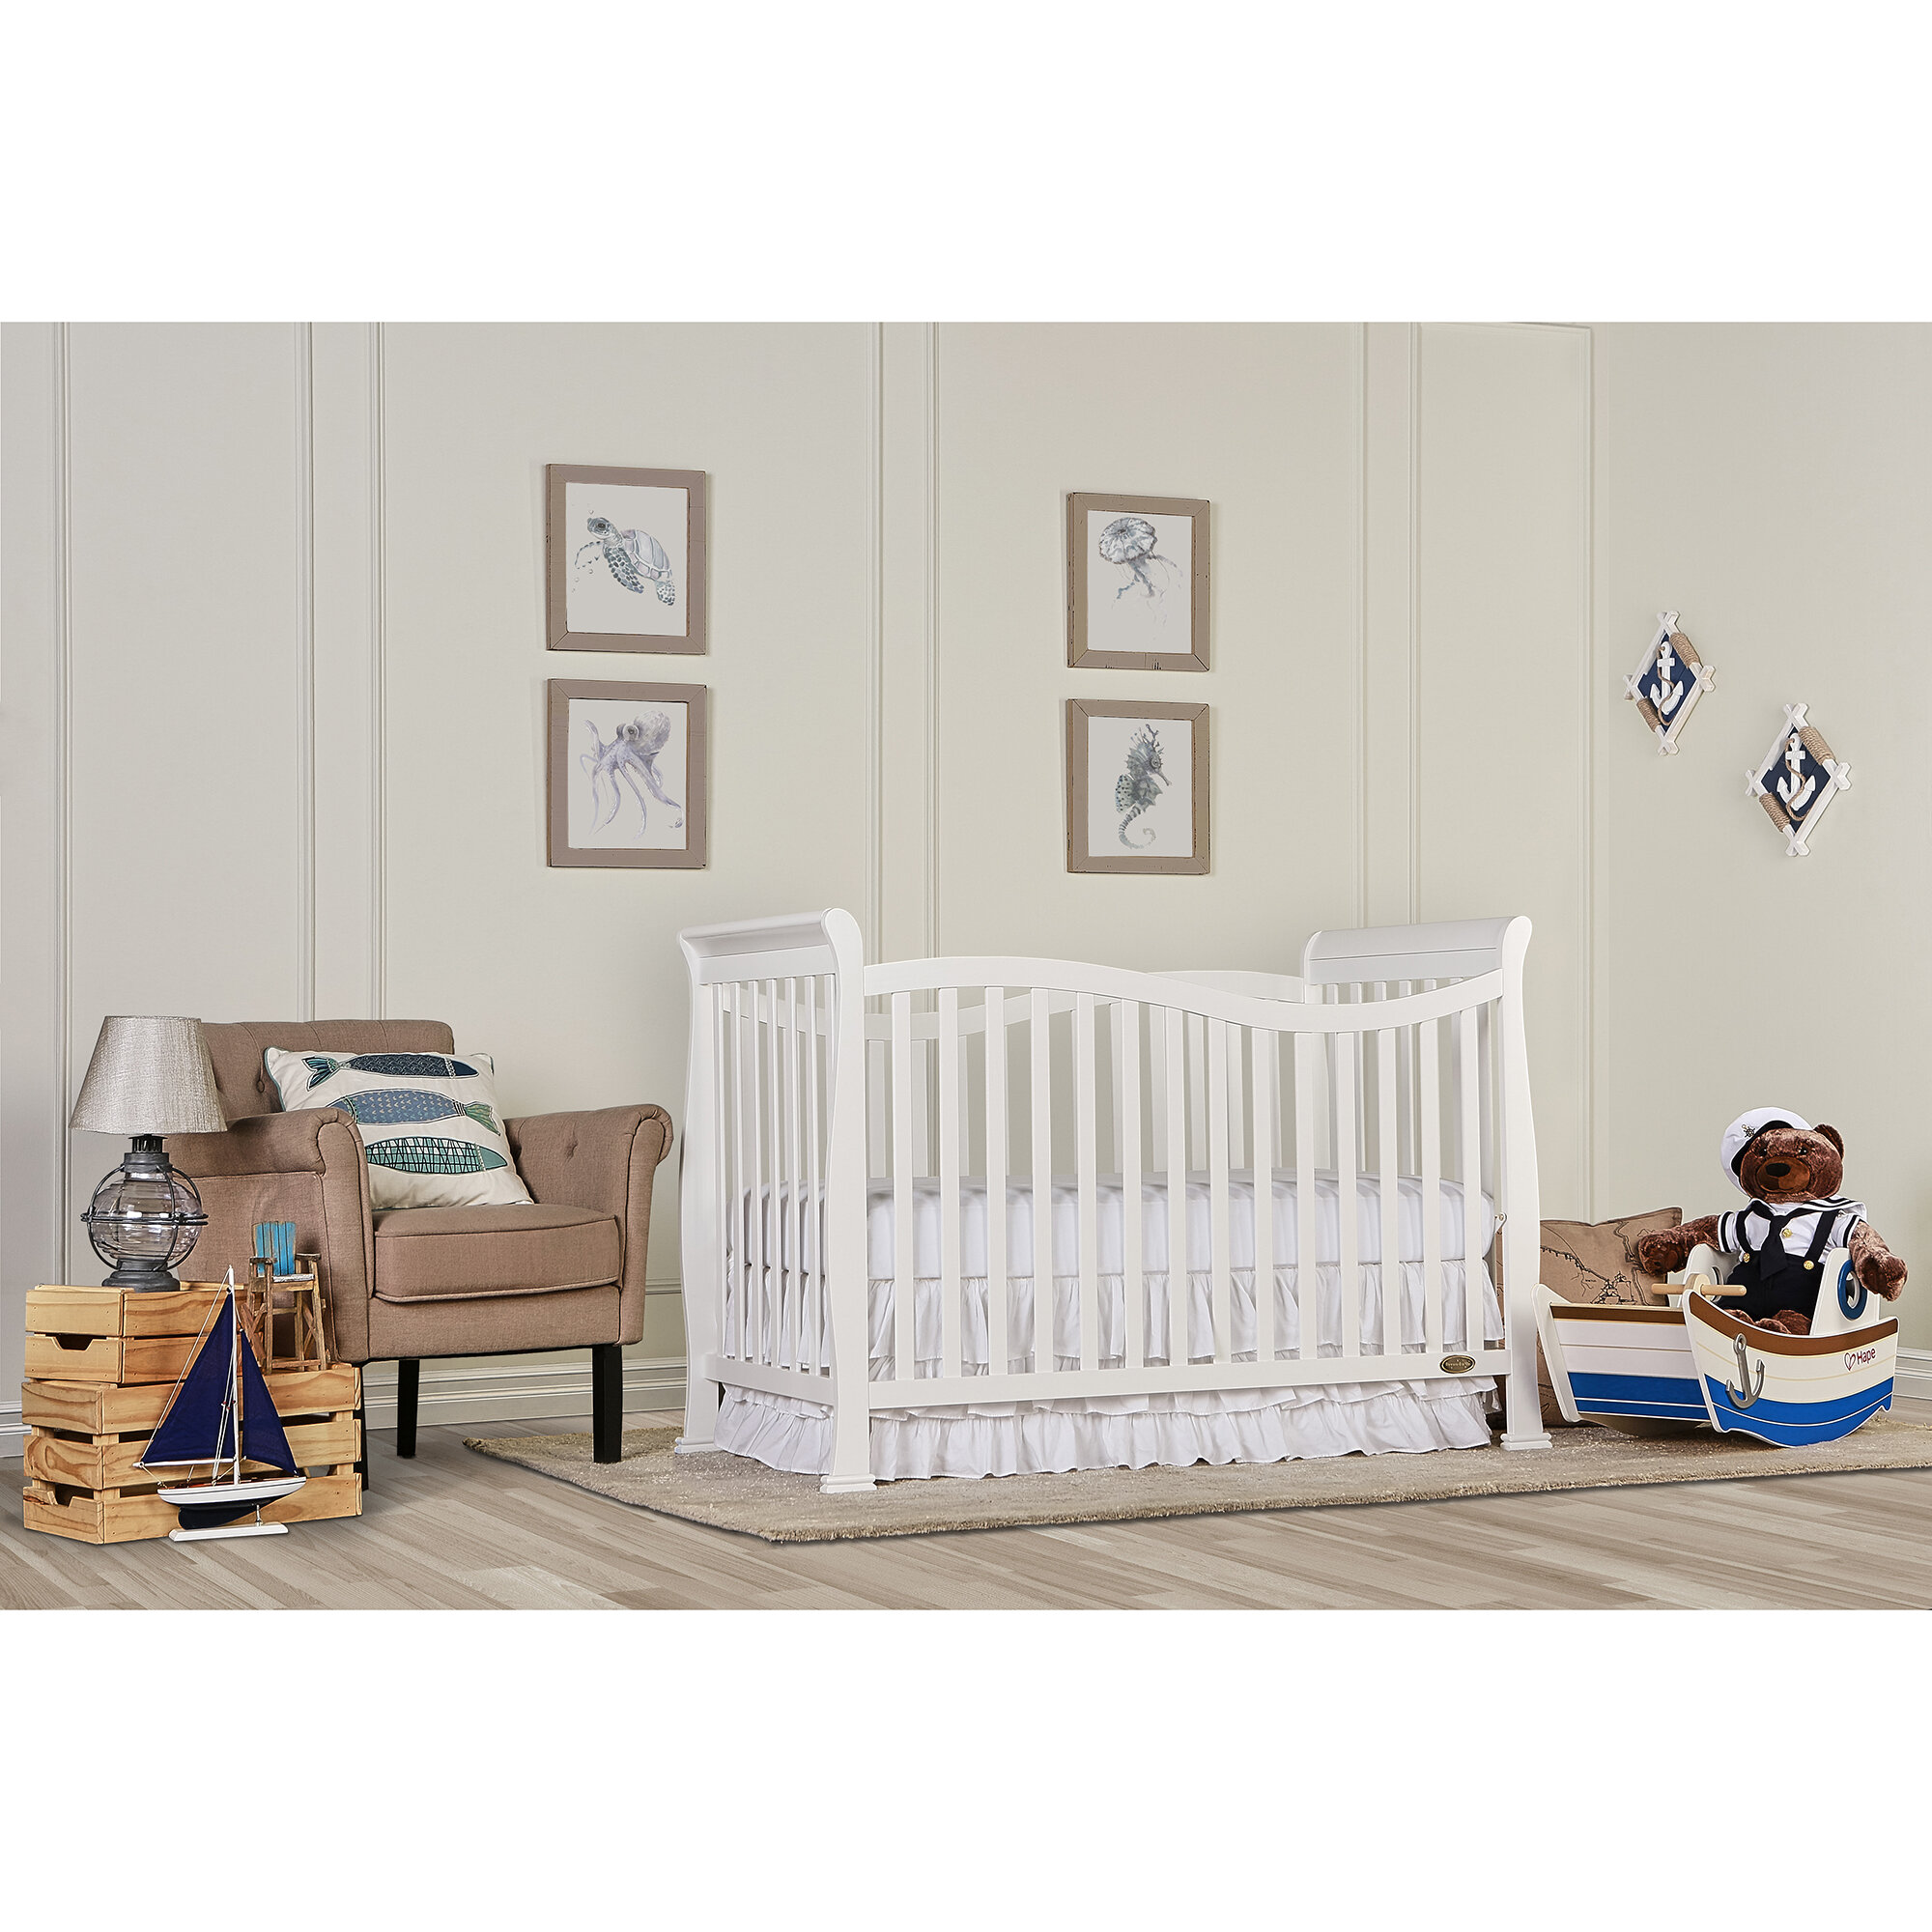 pin crib bed white chloe on dream into with changer turns wood me convertible in